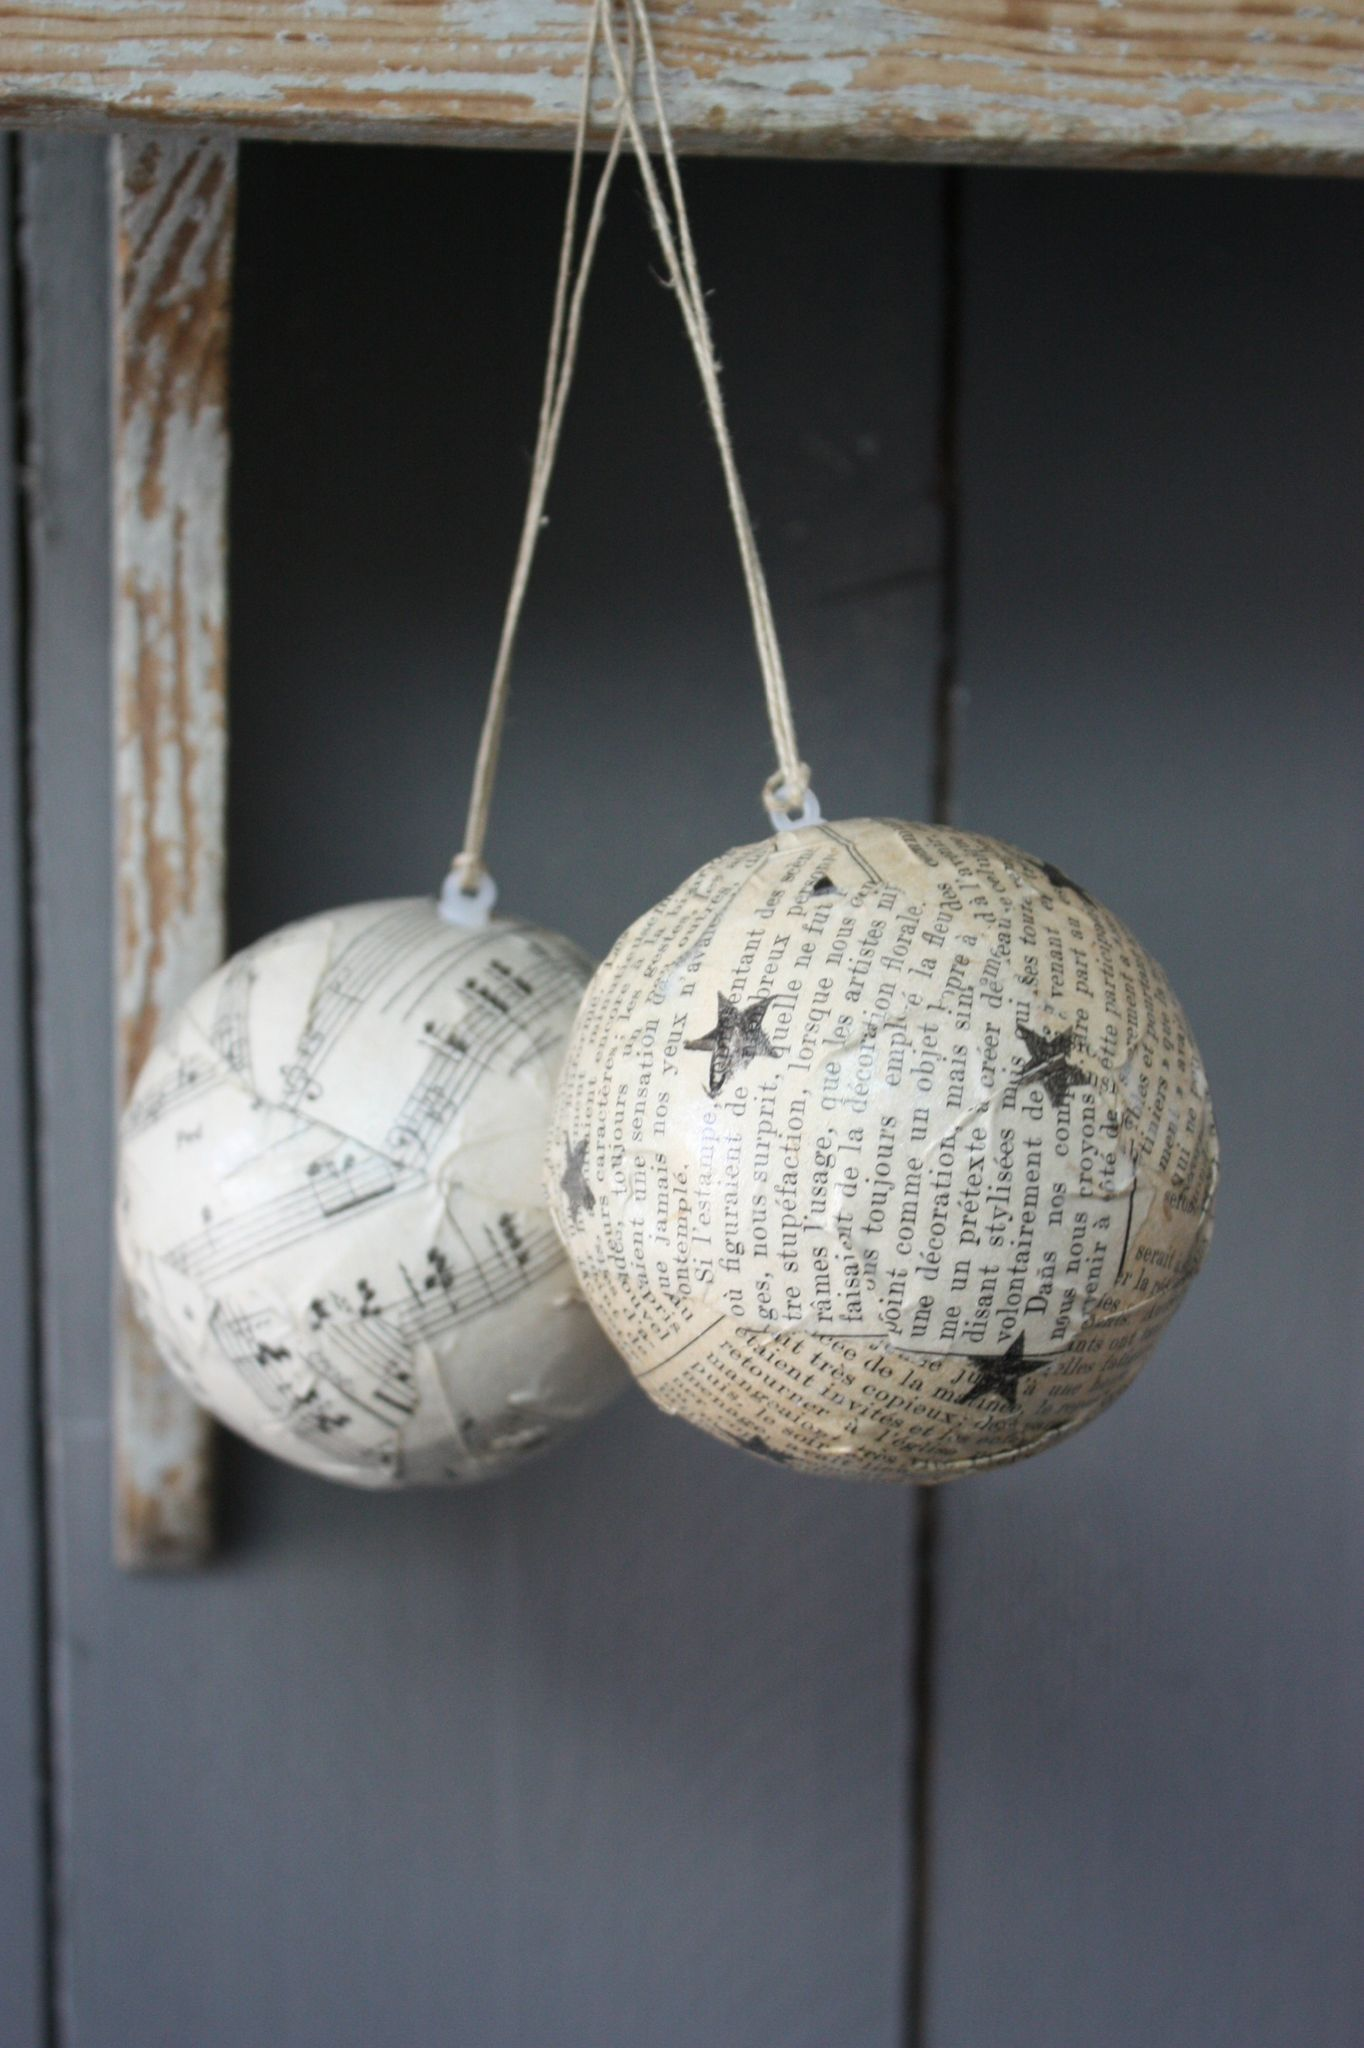 Diy Christmas Ornaments Use Old Books Or Music Sheets And Mod